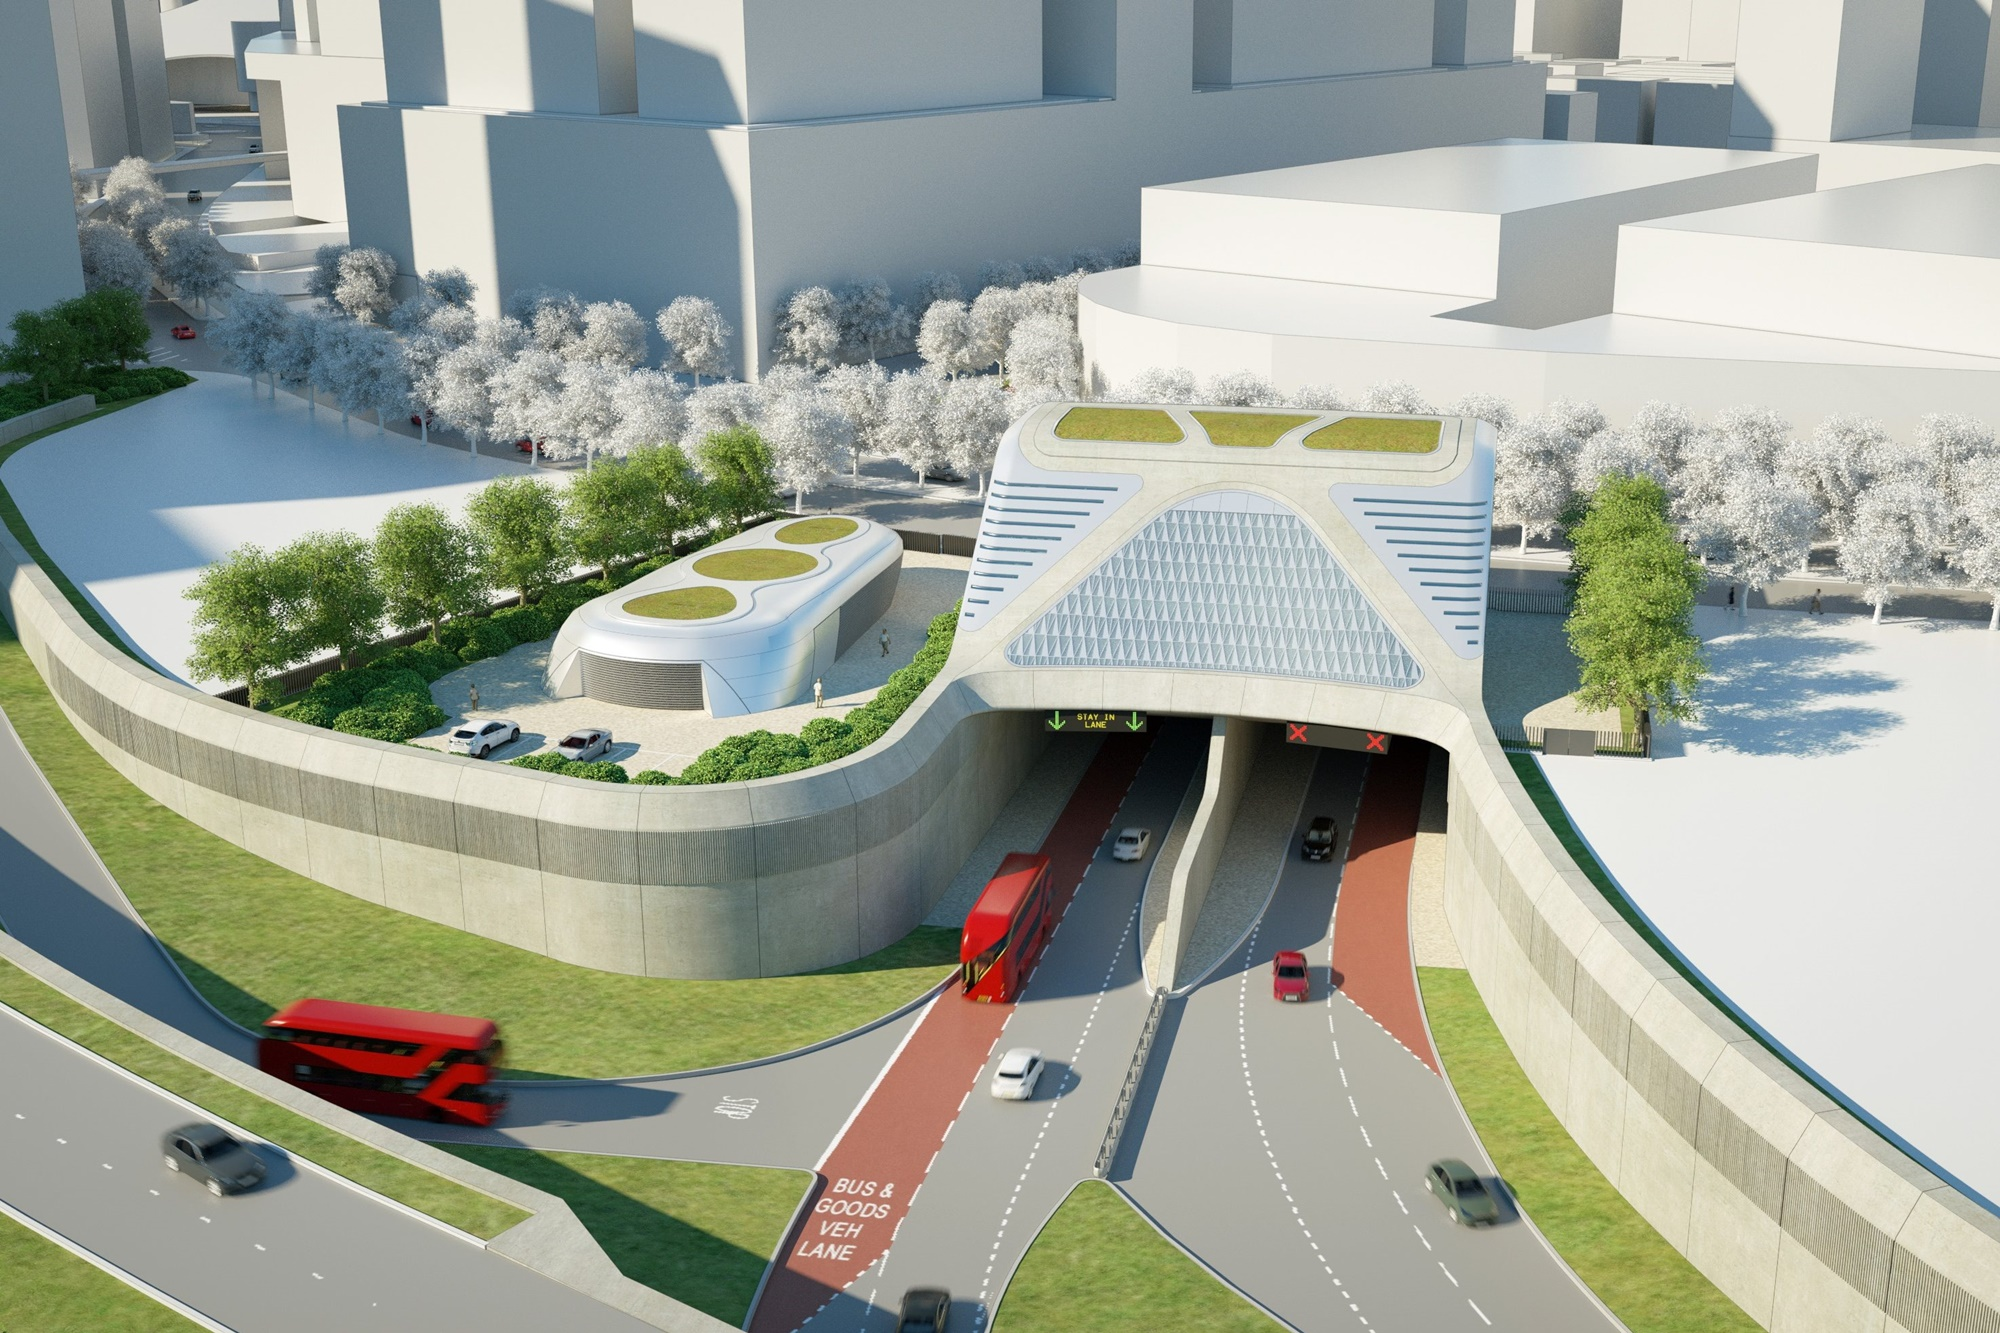 TfL Silvertown Tunnel procurement was 'flawed, discriminatory and manifestly erroneous' - New Civil Engineer